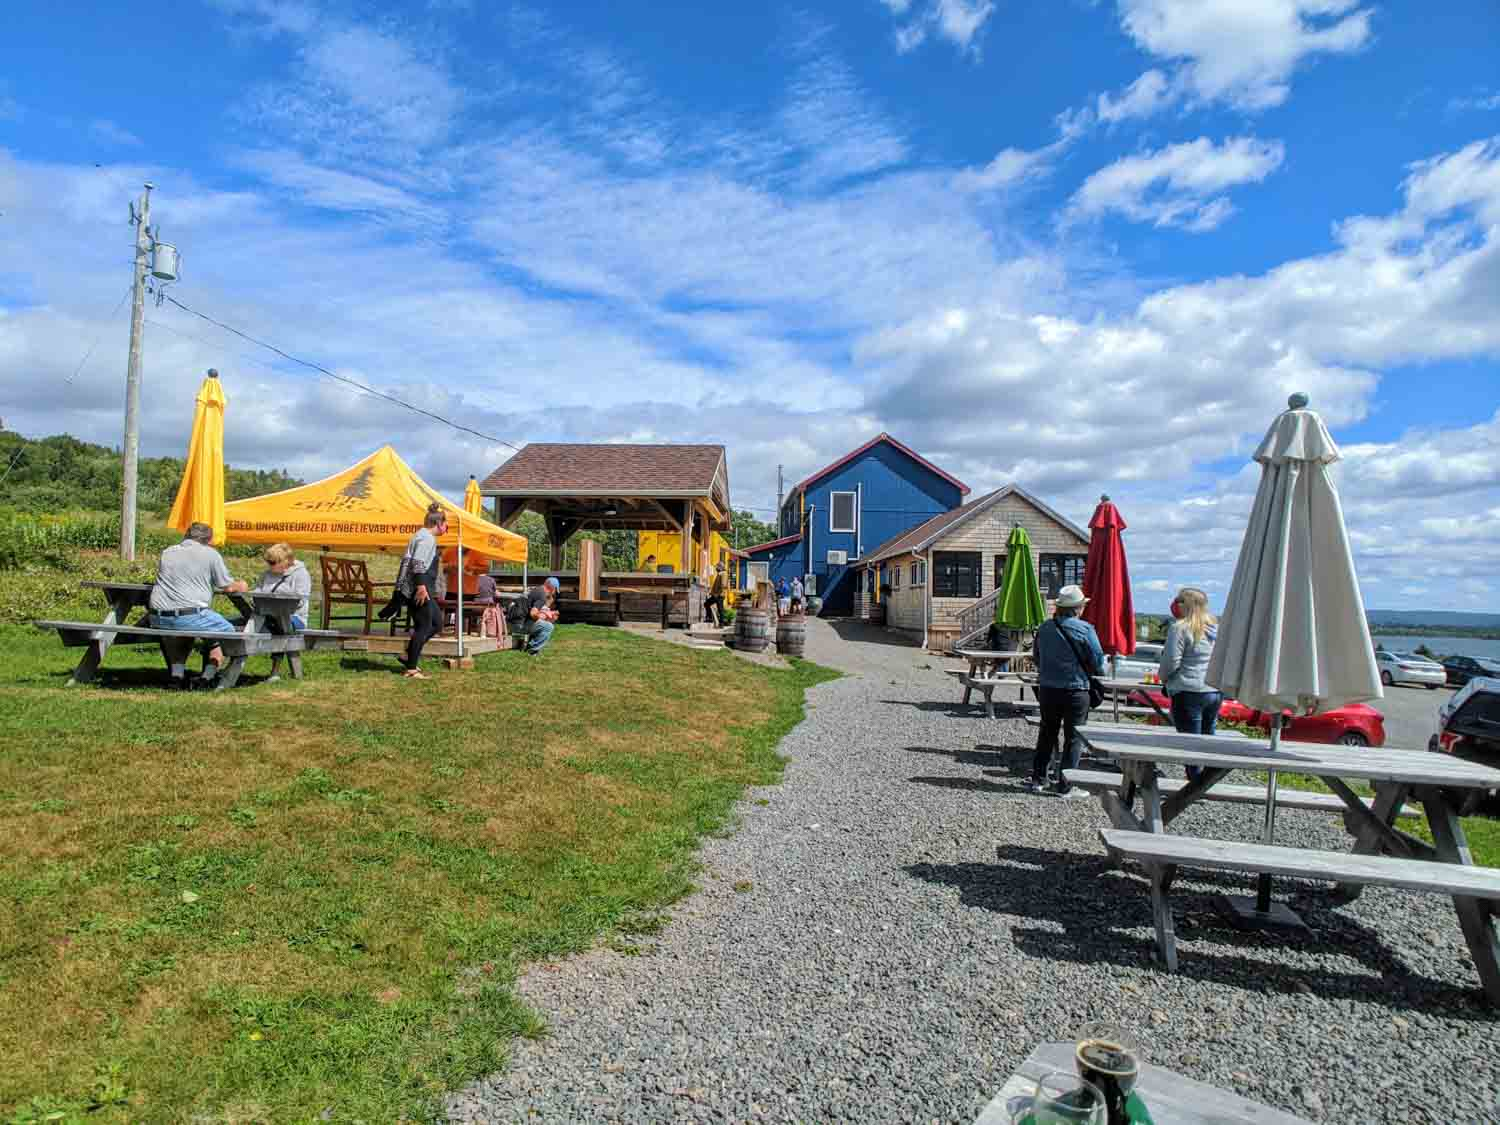 Big Spruce Brewing Company grounds with picnic tables